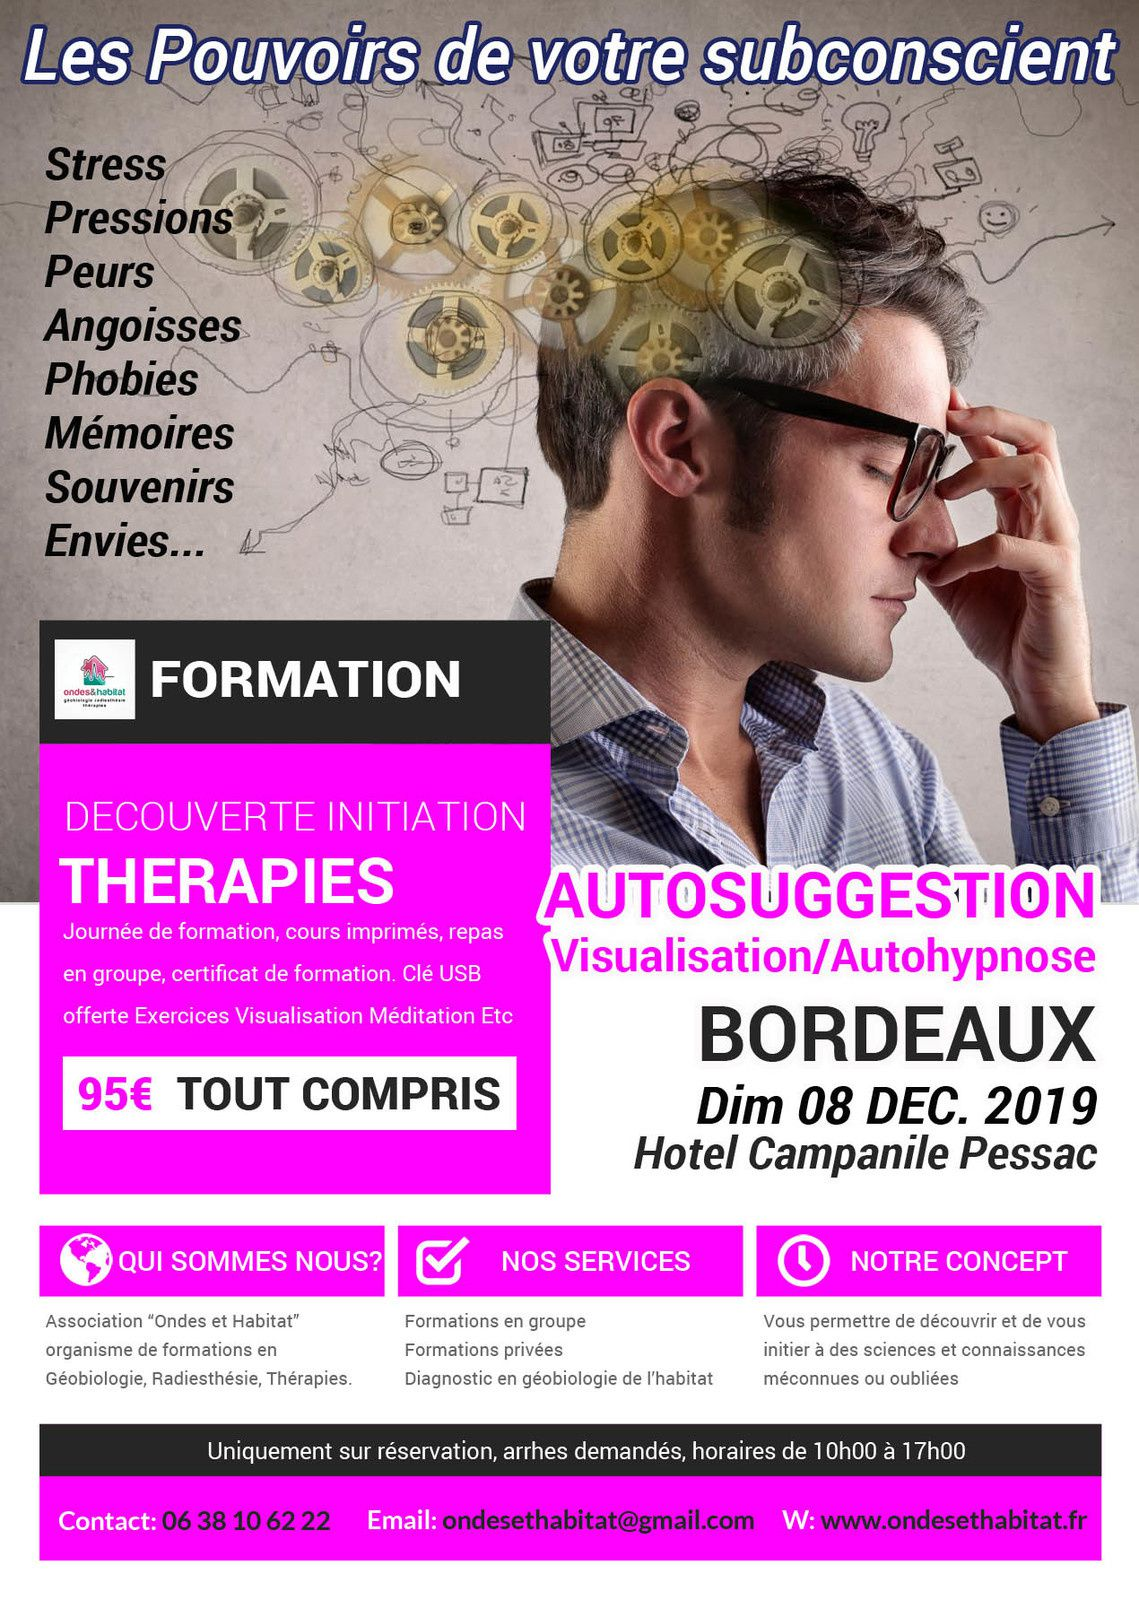 Bordeaux Formation : Autosuggestion Autoguerison Visualisation 08 décembre 2019